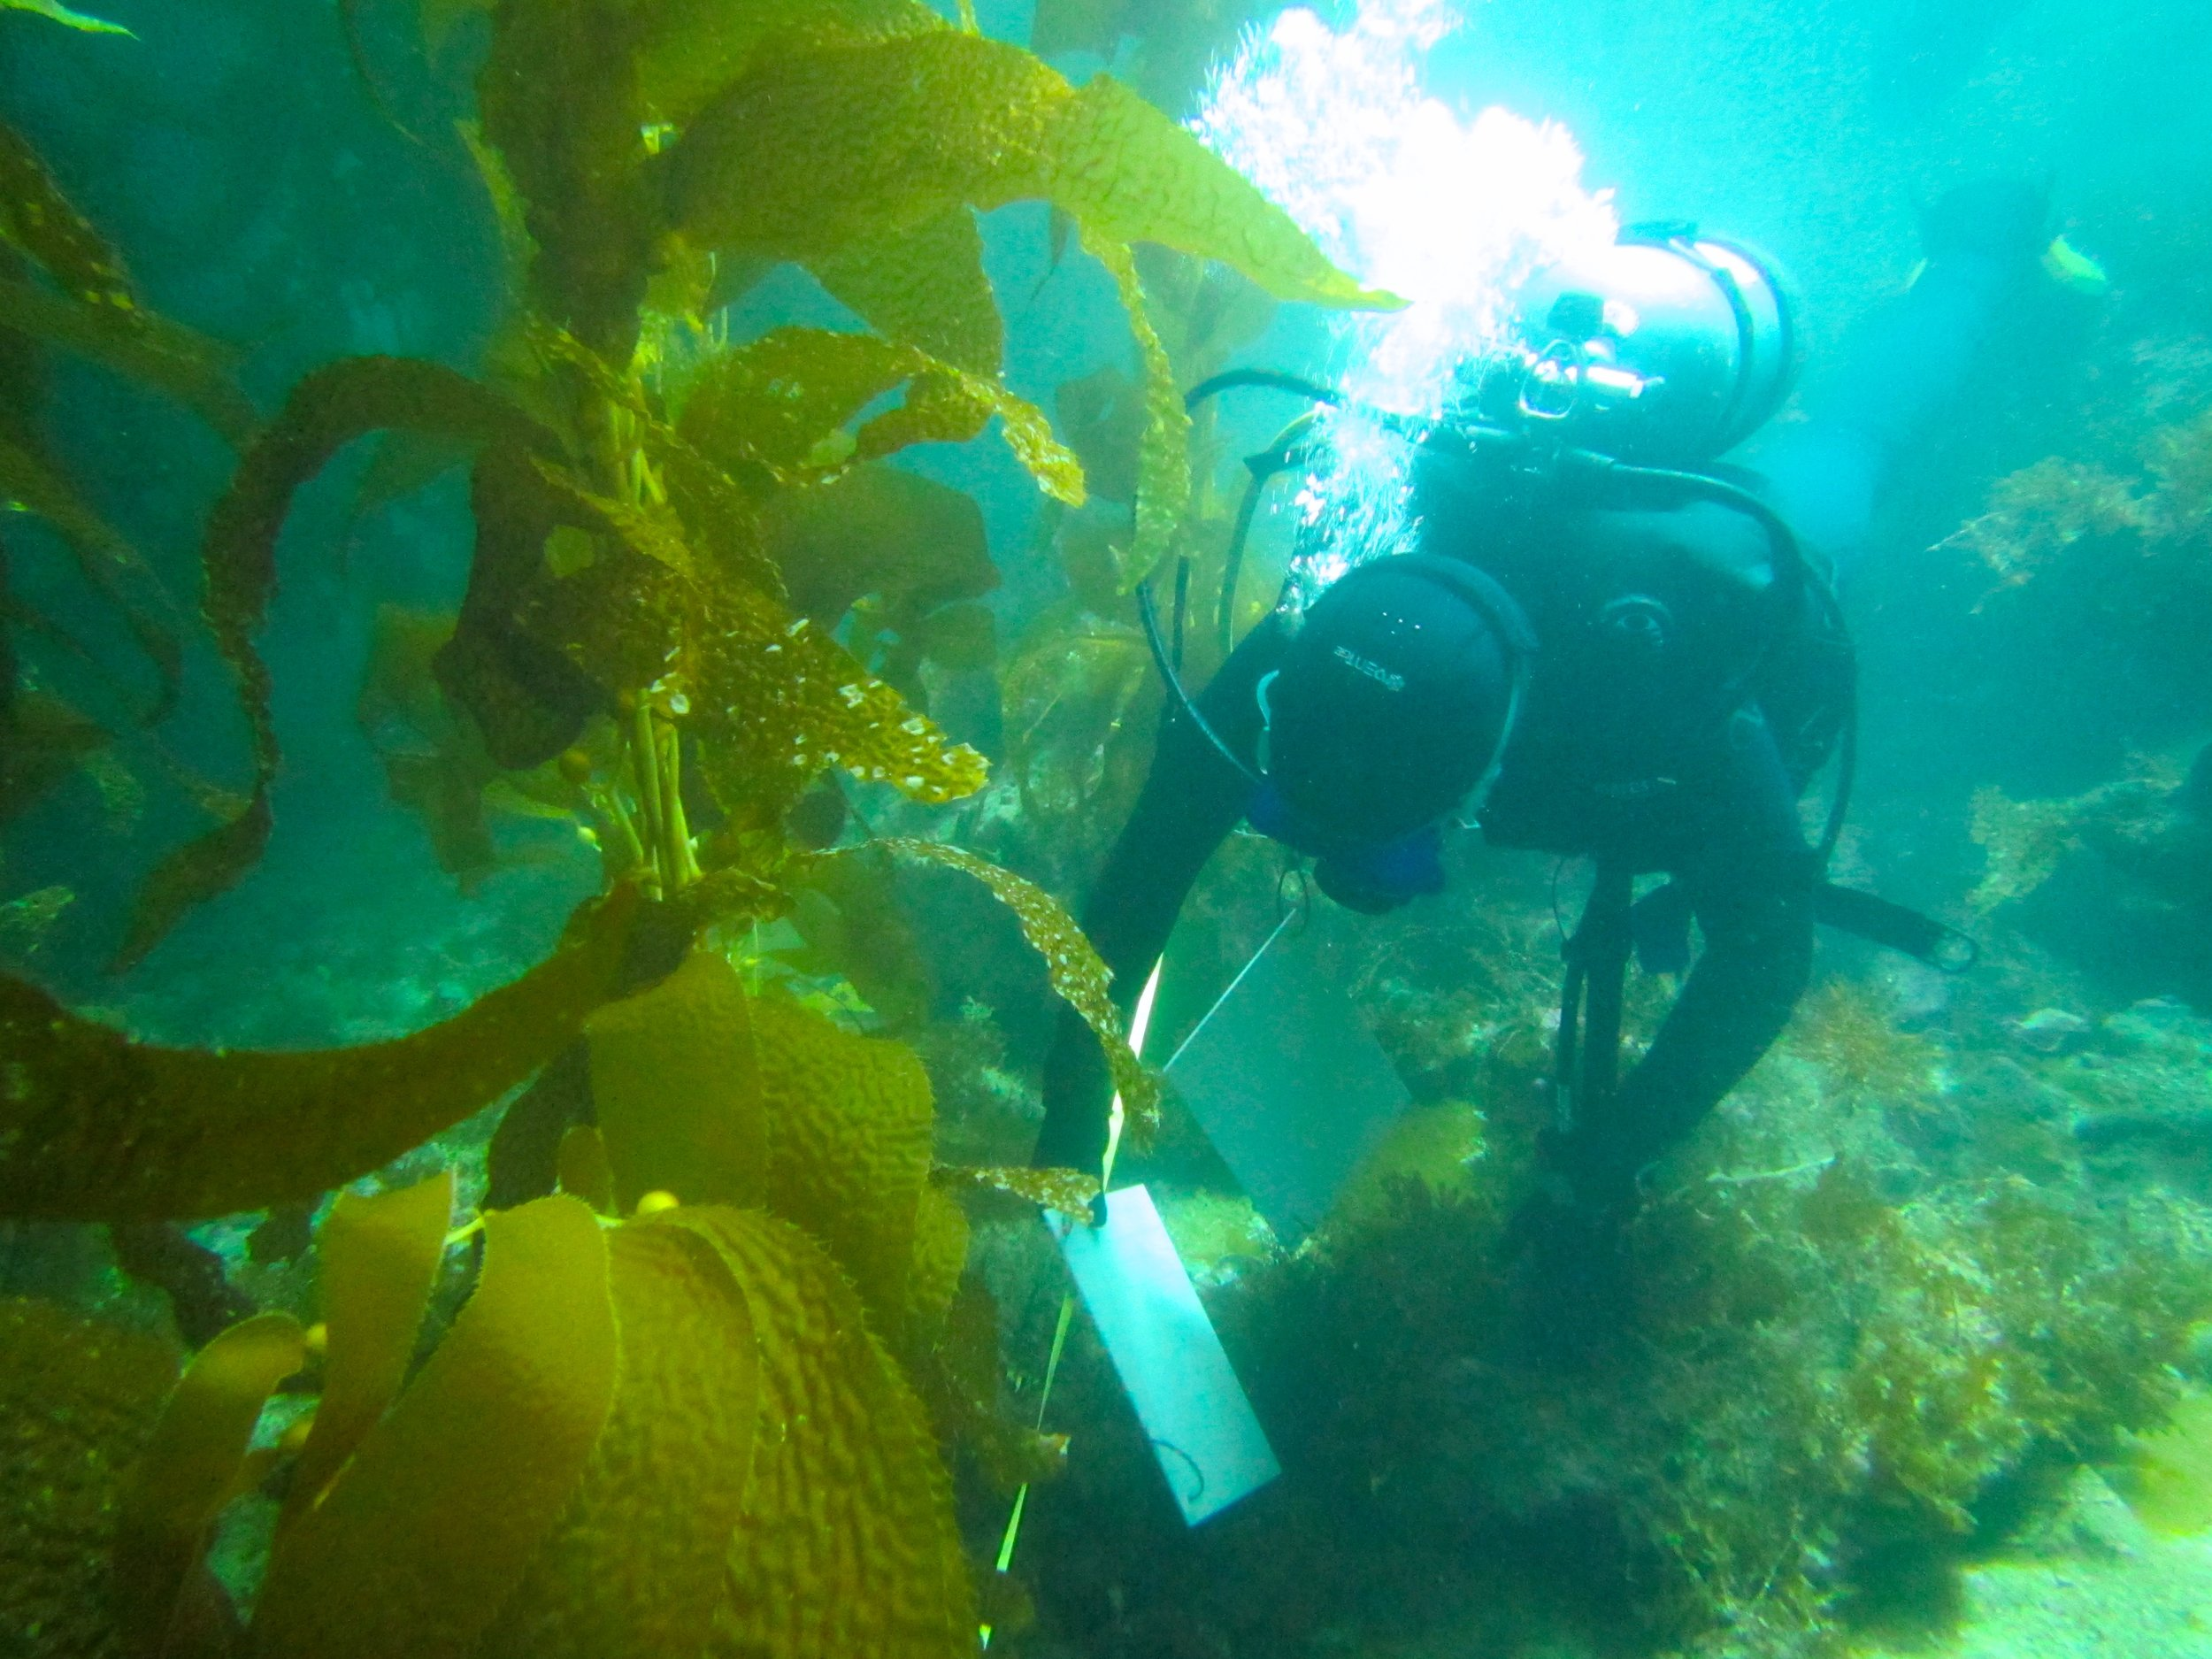 PhD student Laís Lima collecting data about the frequency of kelp and  Sargassum  in the ecosystem using a transect line. Photo credit: Jason Baer